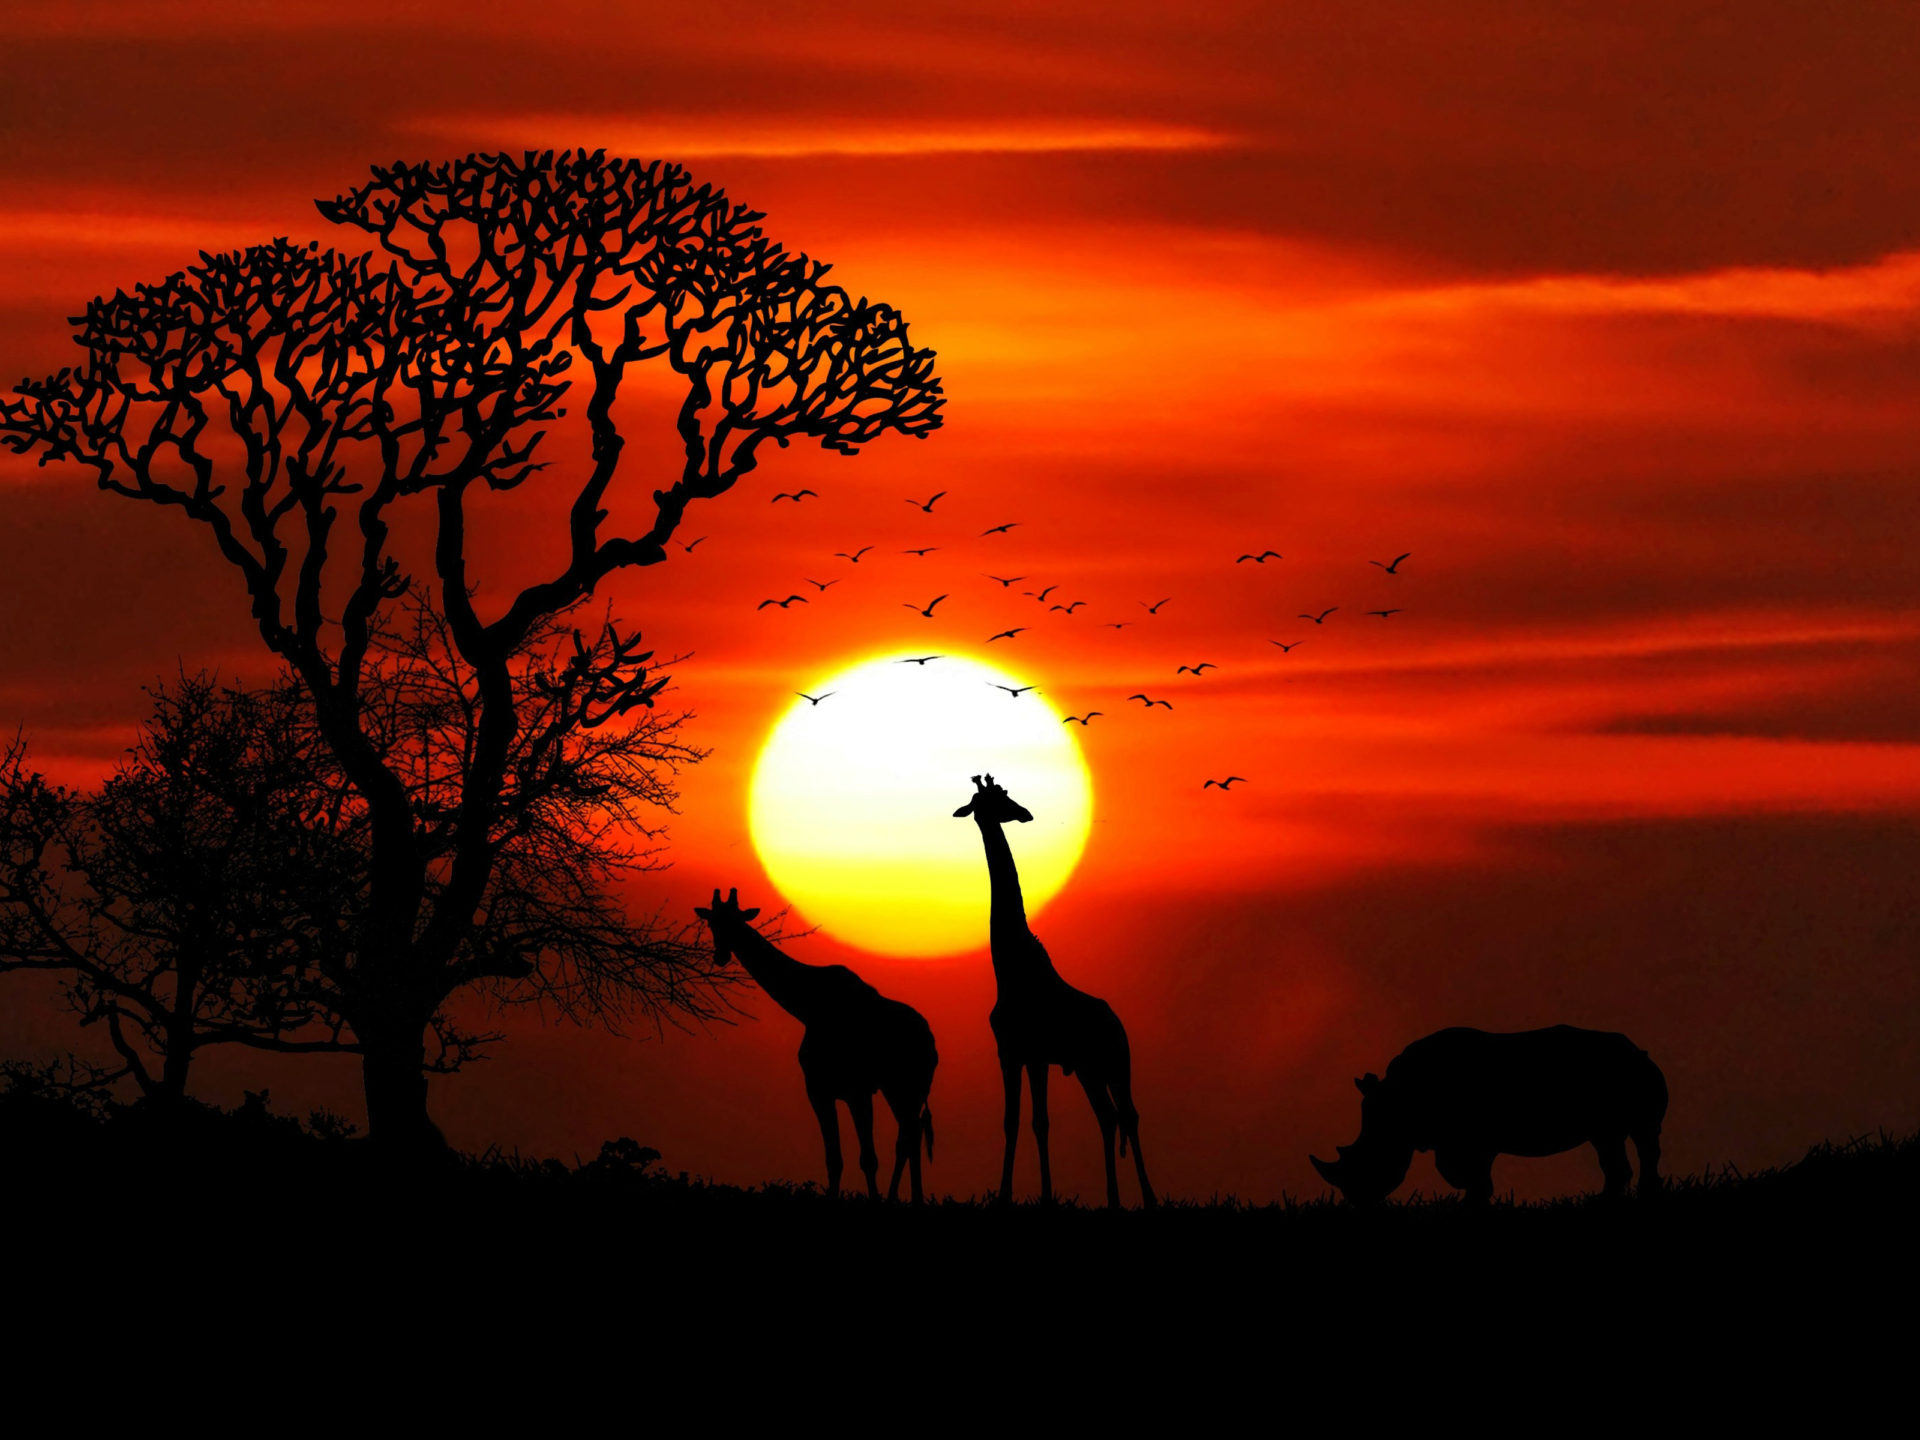 Cars Wallpaper Download For Pc Sunset African Savanna Sun Red Sky Silhouettes Of Tree